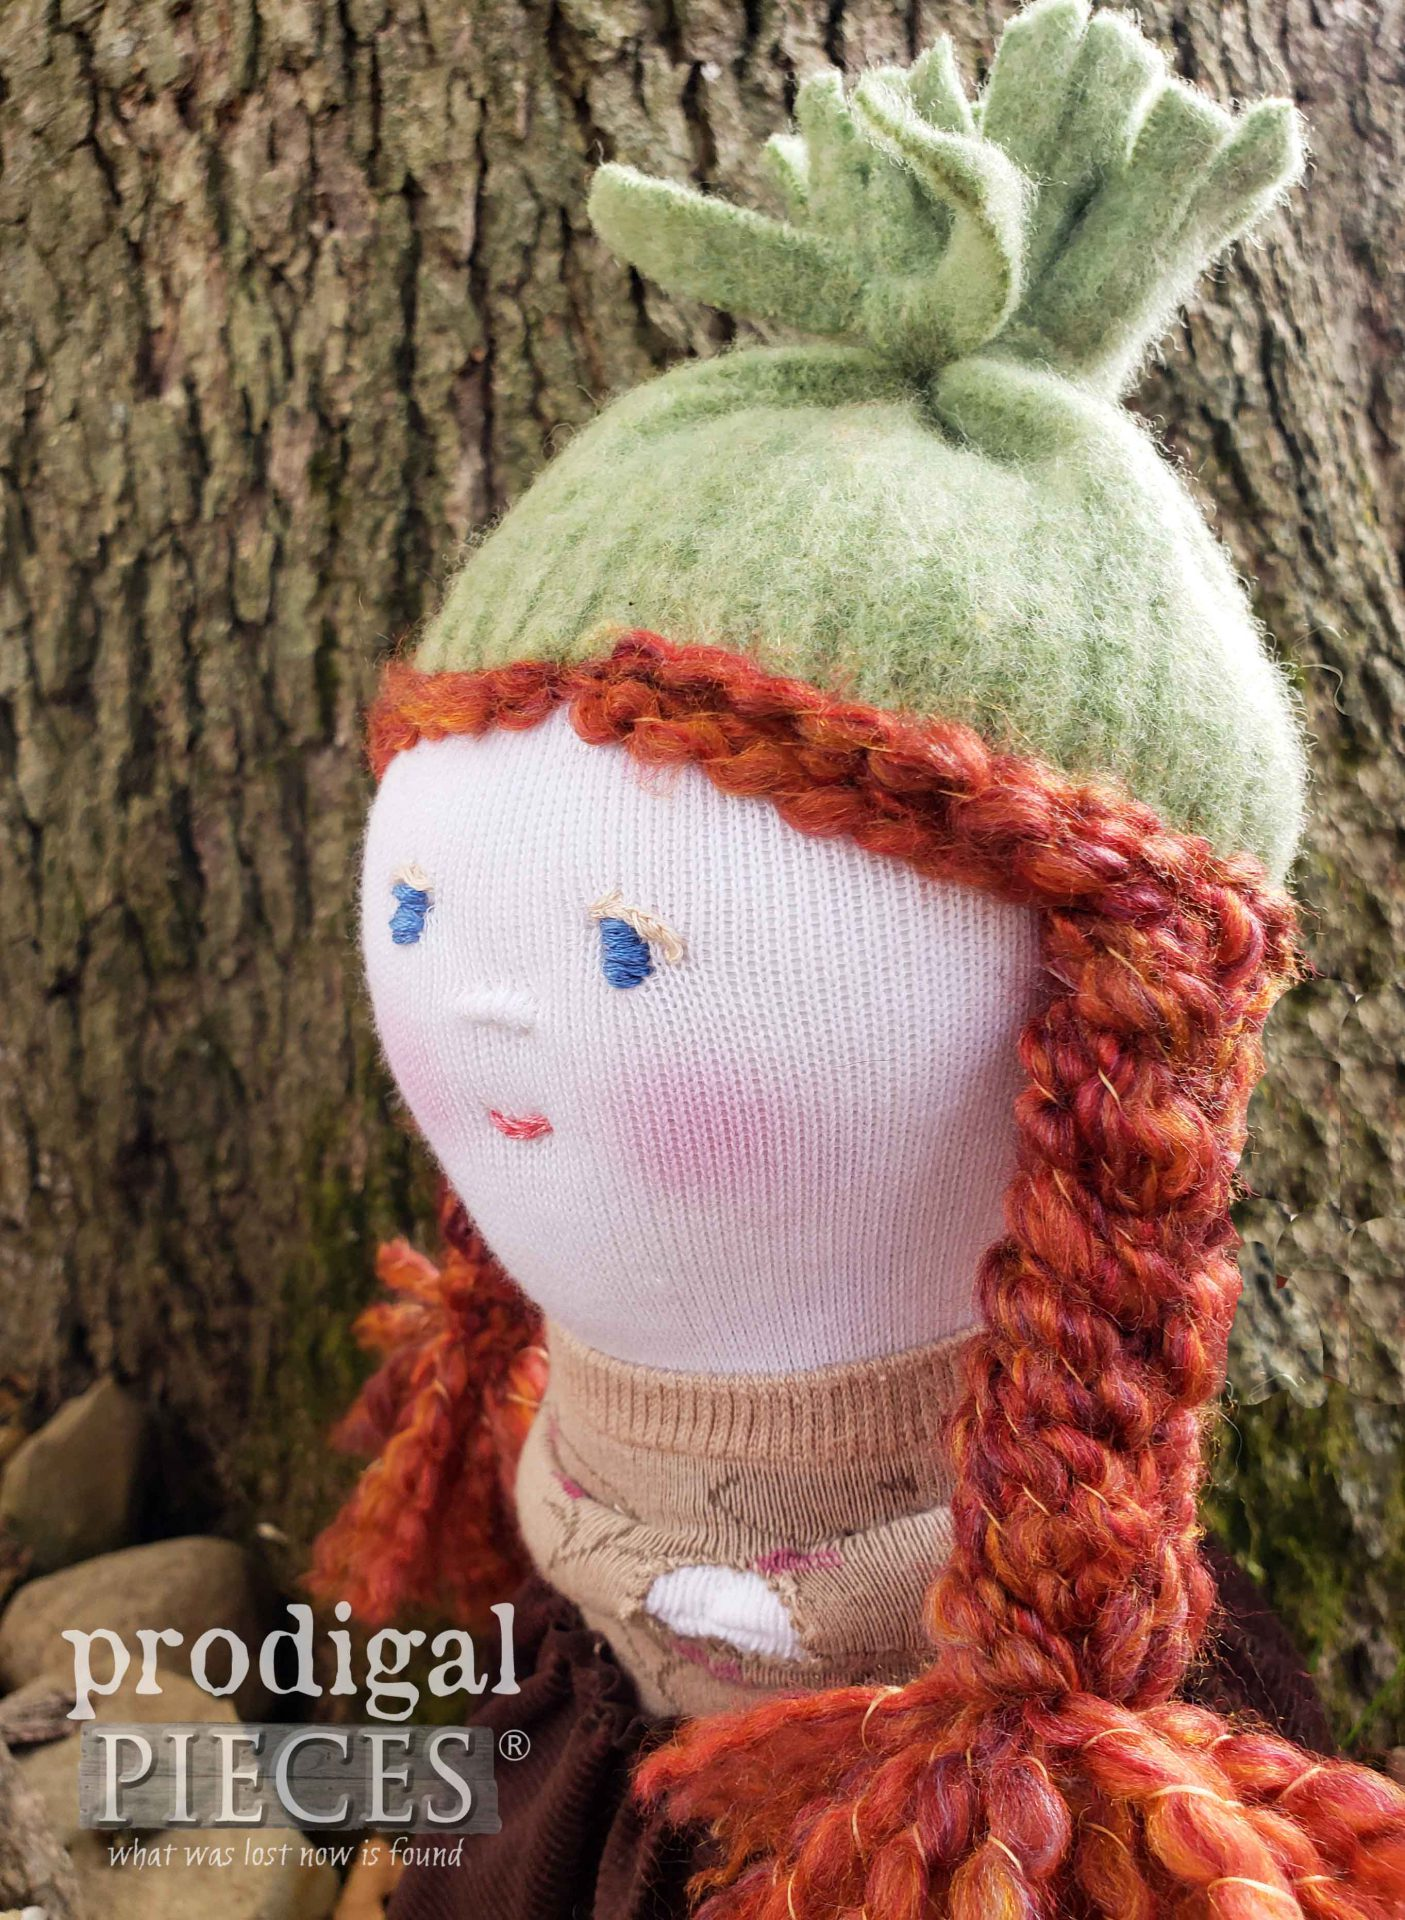 Redhead Sock Doll handmade by Larissa of Prodigal Pieces | prodigalpieces.com #prodigalpieces #diy #handmade #doll #crafts